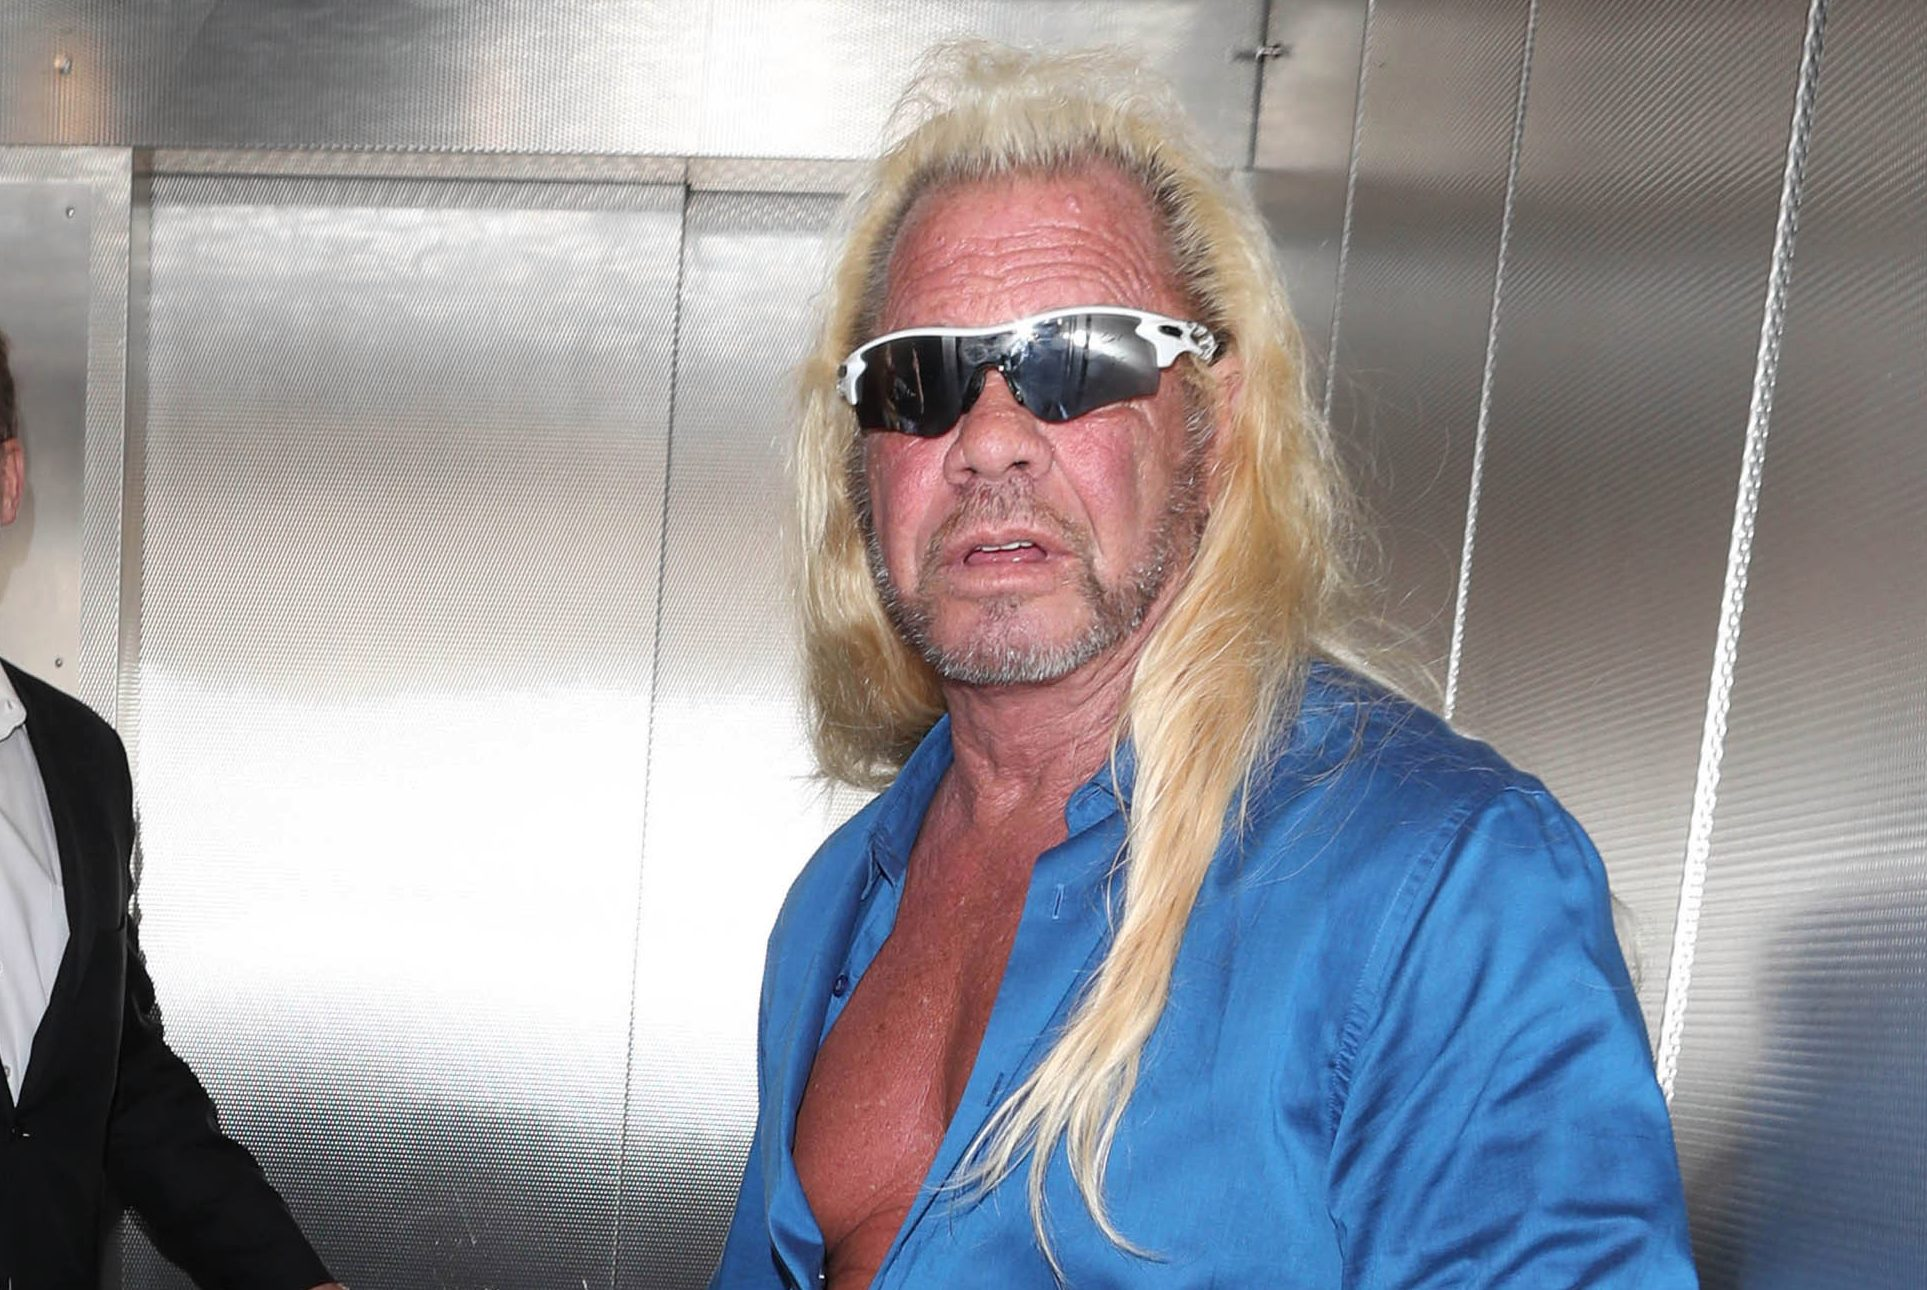 Dog The Bounty Hunter recalls frantic search for son during 'Columbine massacre copycat' threat